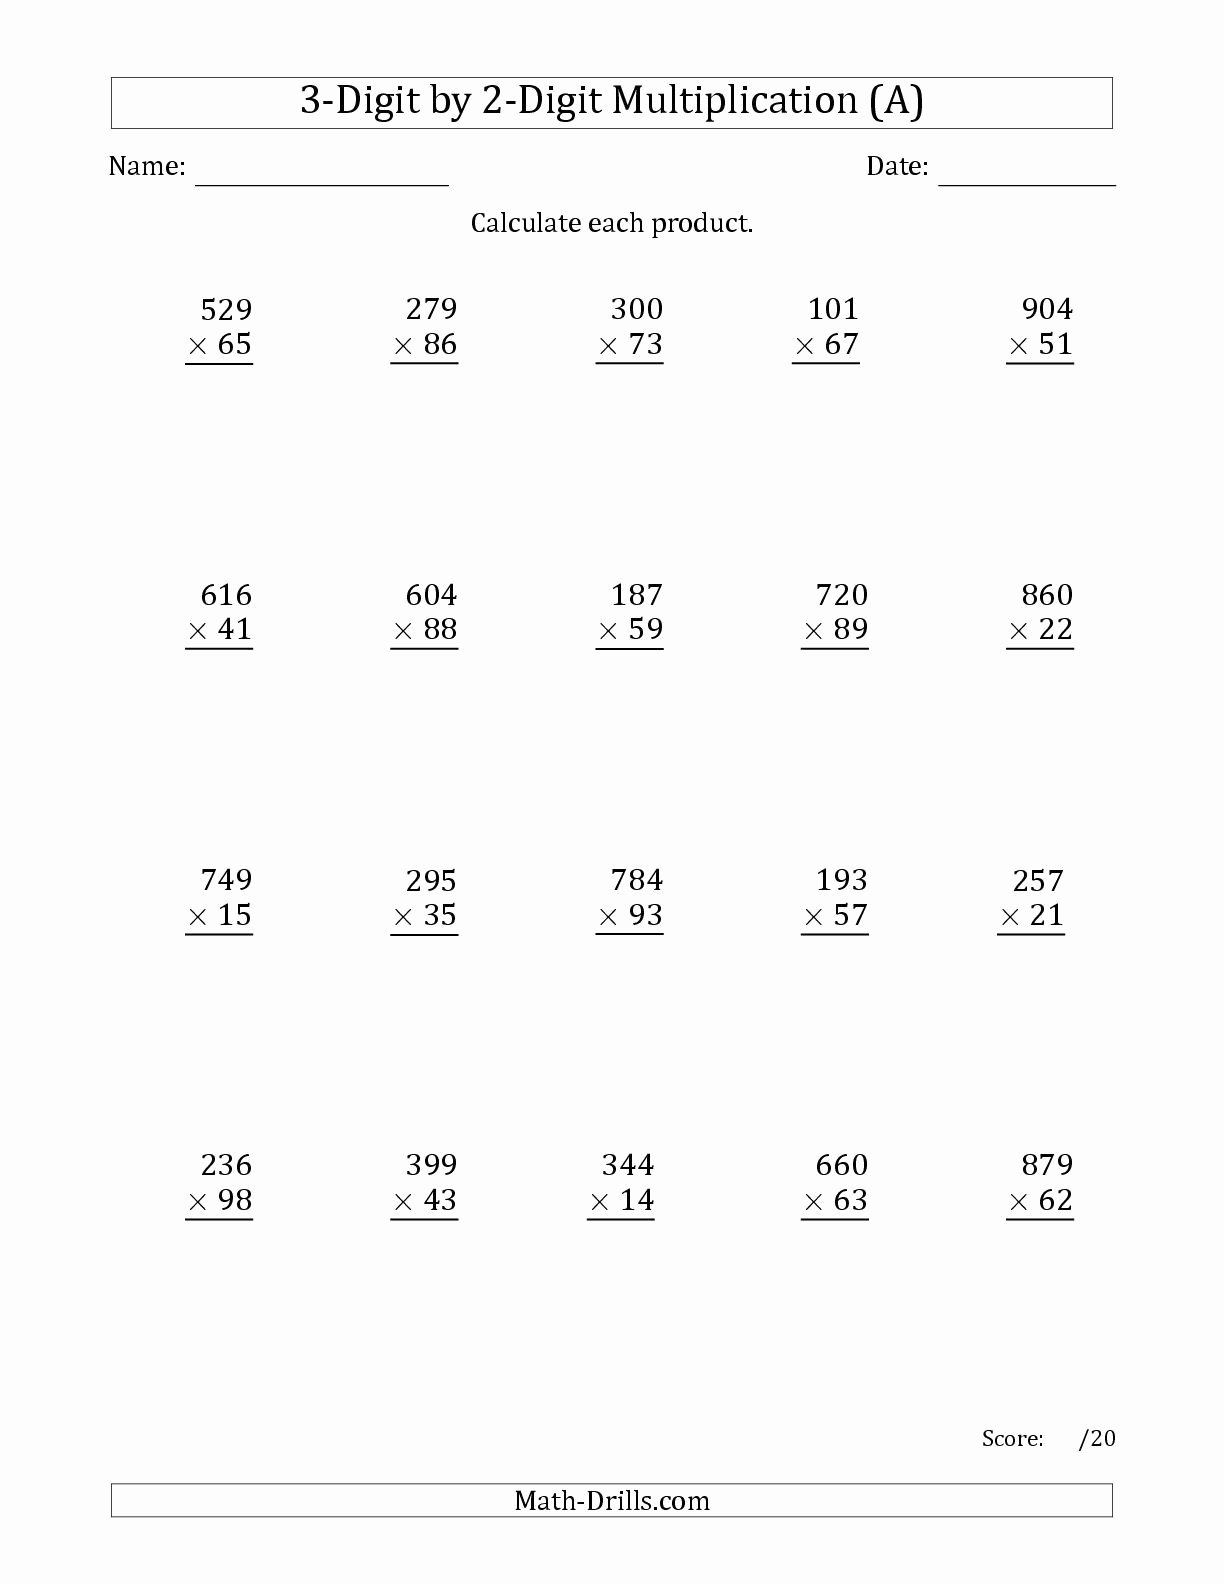 Multiplication Worksheets Grade 5 3 Digit by 2 Digit New the Multiplying 3 Digit by 2 Digit Numbers A Math